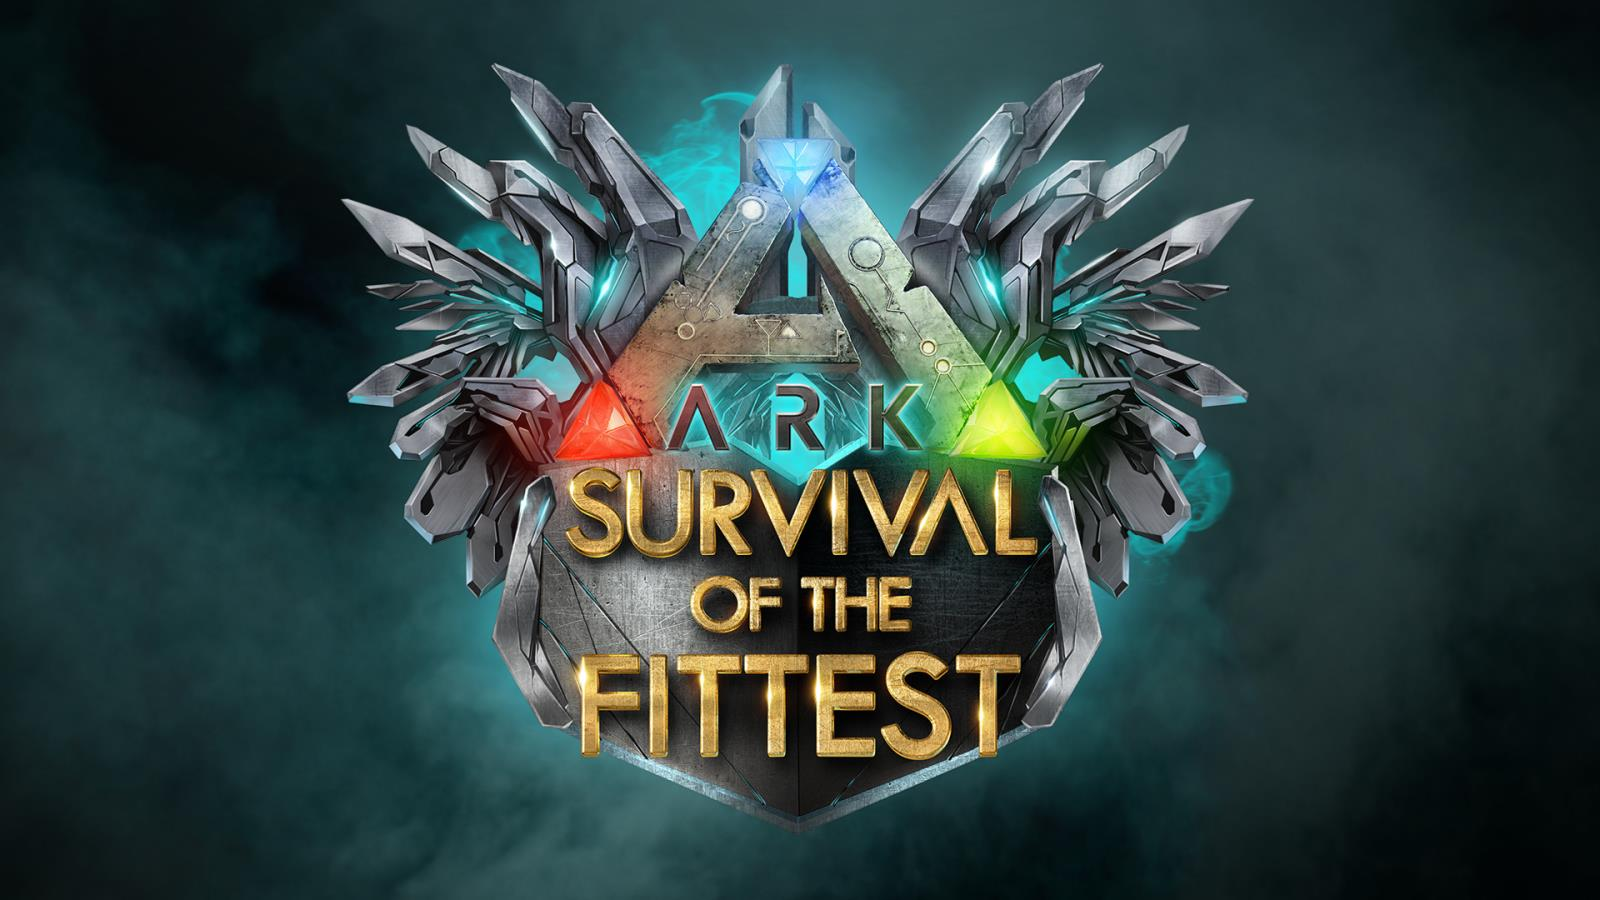 Pubg Awesome Wallpaper Ark Survival Of The Fittest Merging Back With Survival